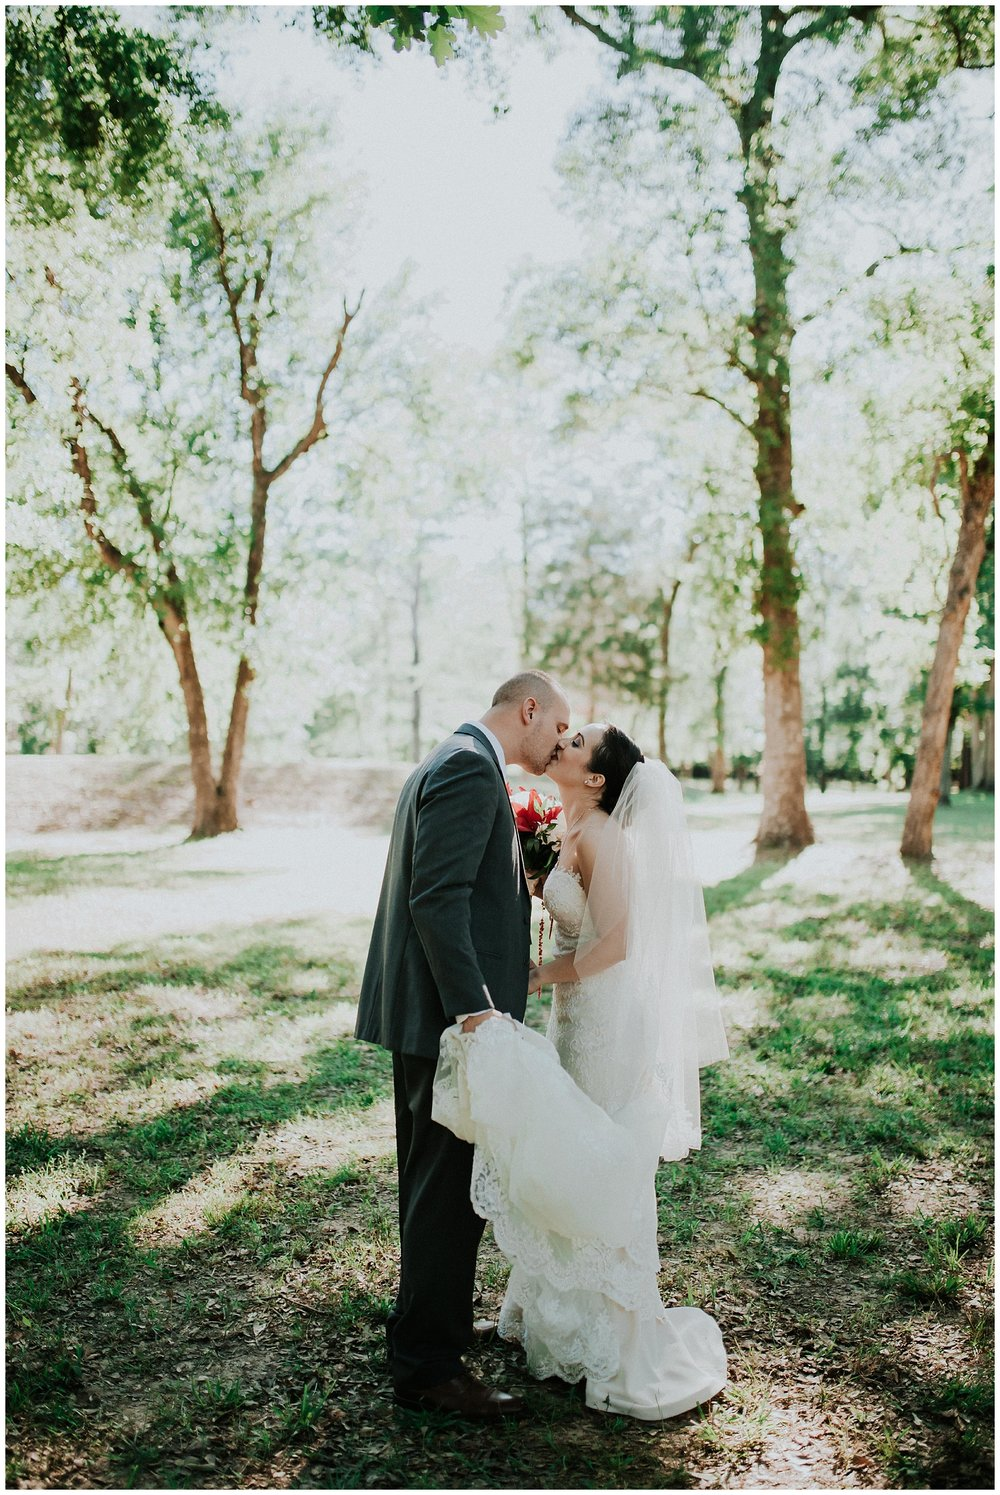 Madeleine Frost - Texas Wedding Photographer - Madera Estates Conroe - Bianca and Kyle-3-5.jpg